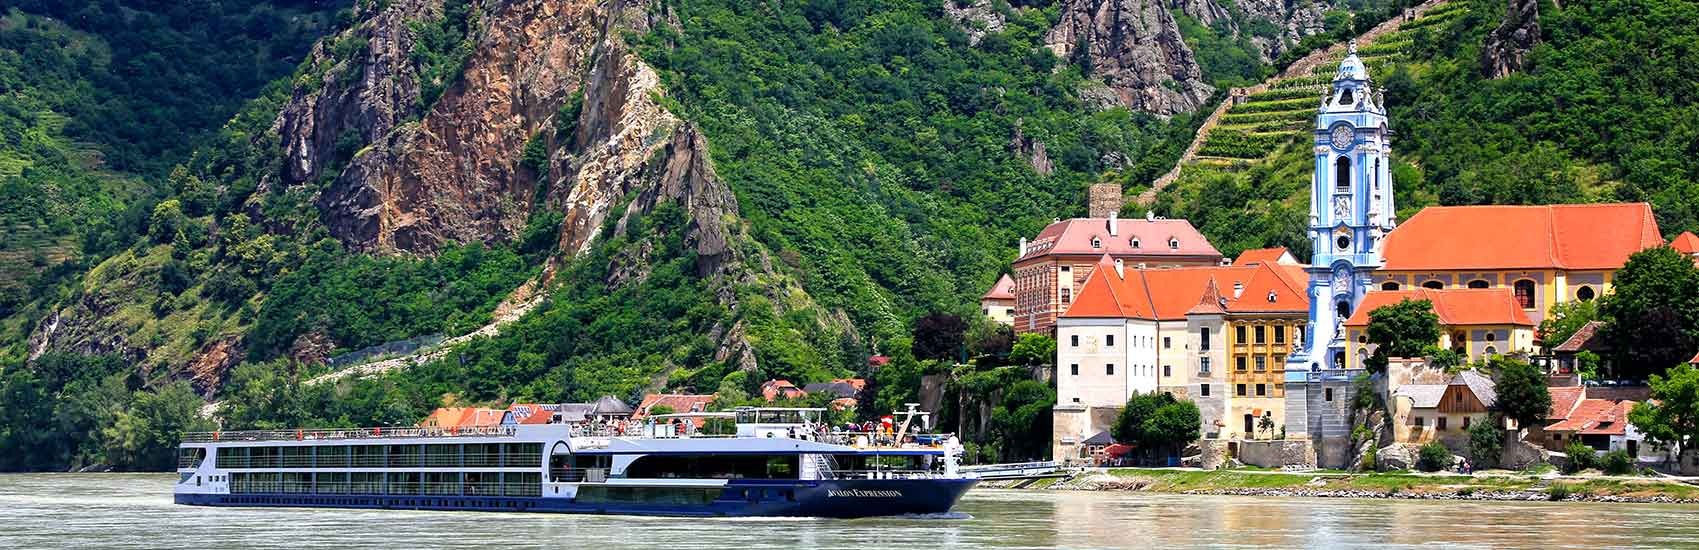 Exclusive Virtuoso Offer with Avalon Waterways